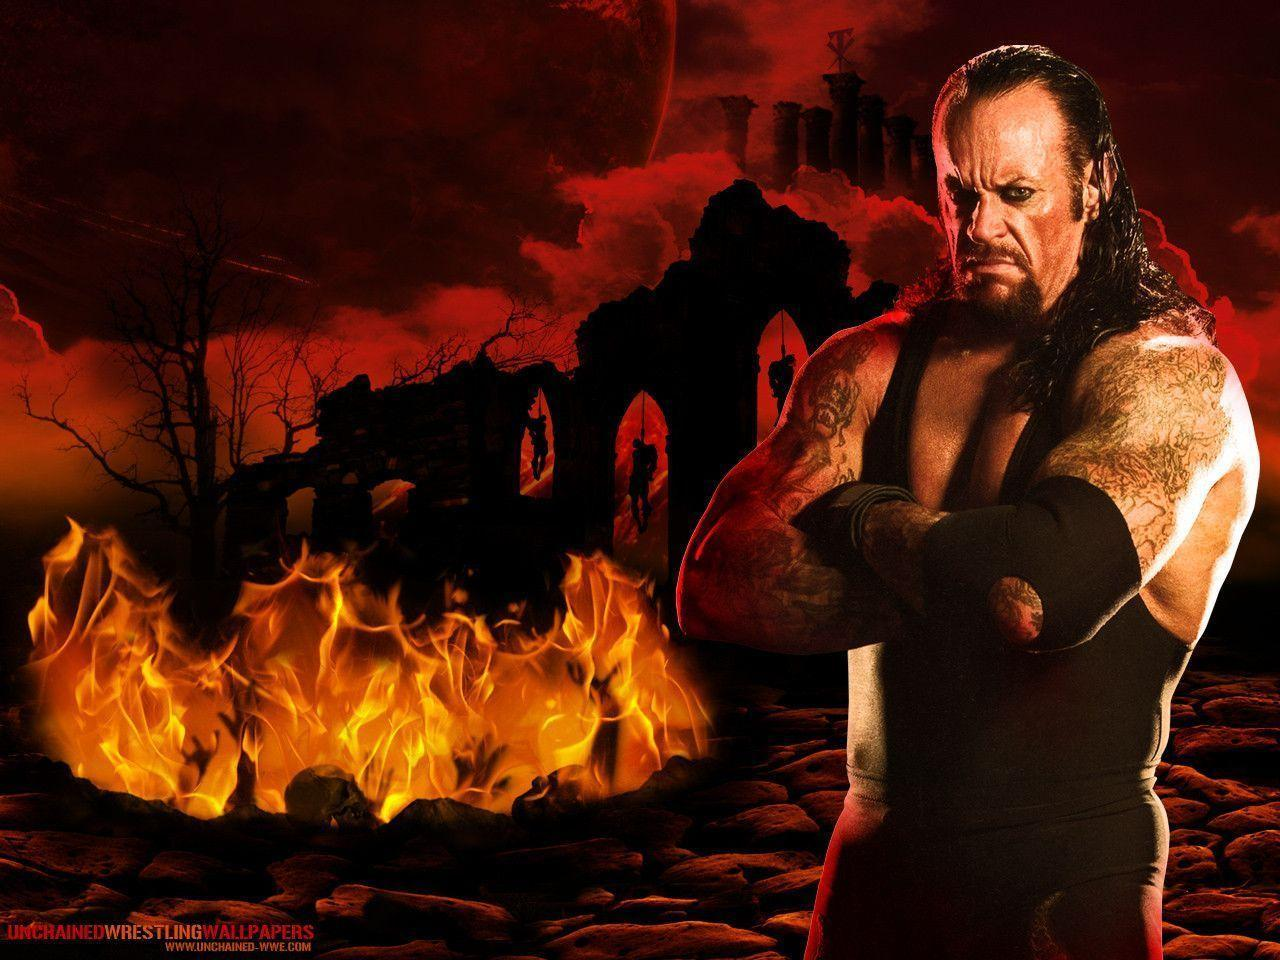 Wwe the undertaker wallpapers wallpaper cave for You are hot pictures